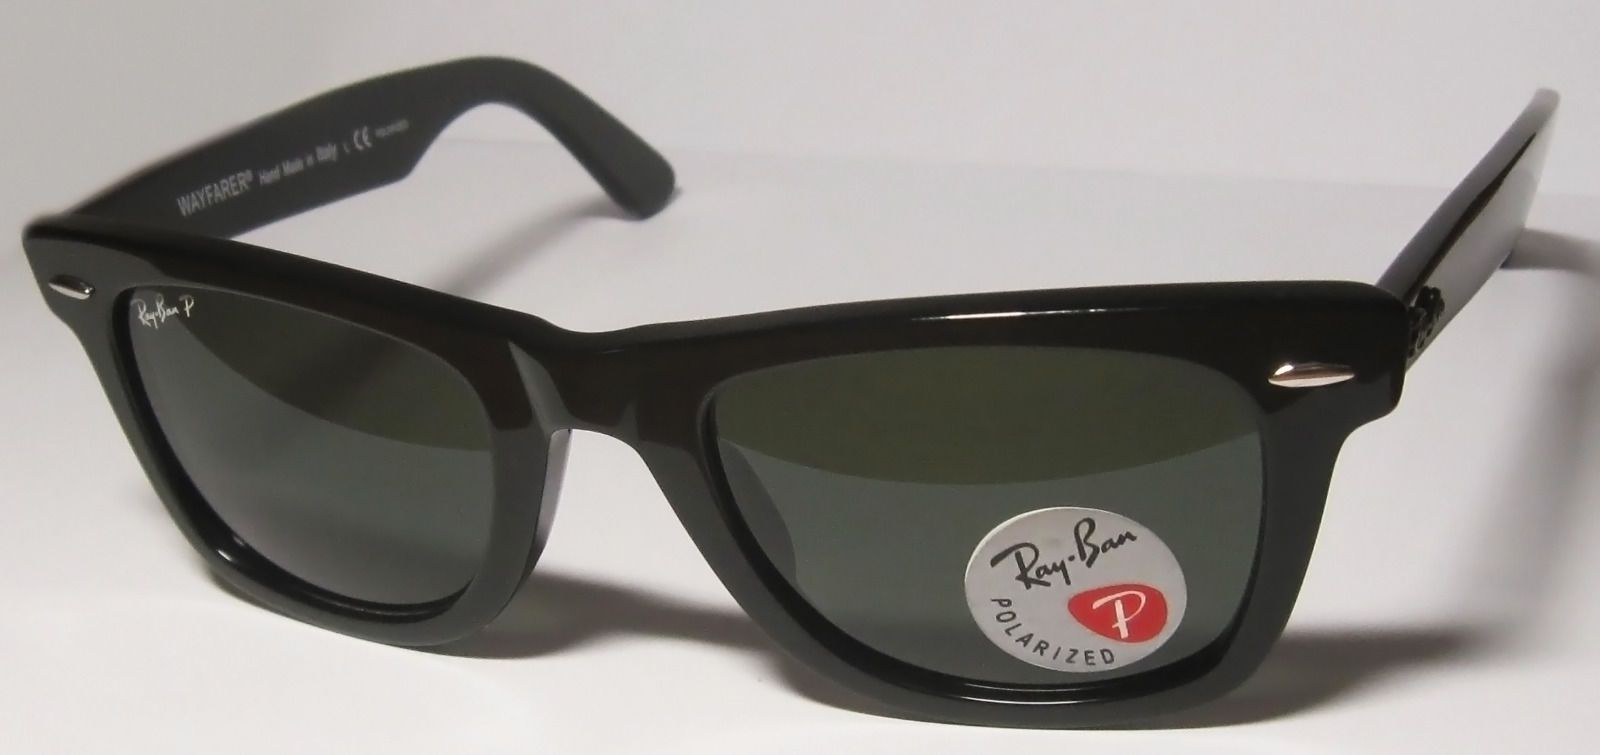 ray ban 2140 wayfarer polarized  Ray-Ban Original Wayfarer Black / Natural green Polarized RB 2140 ...